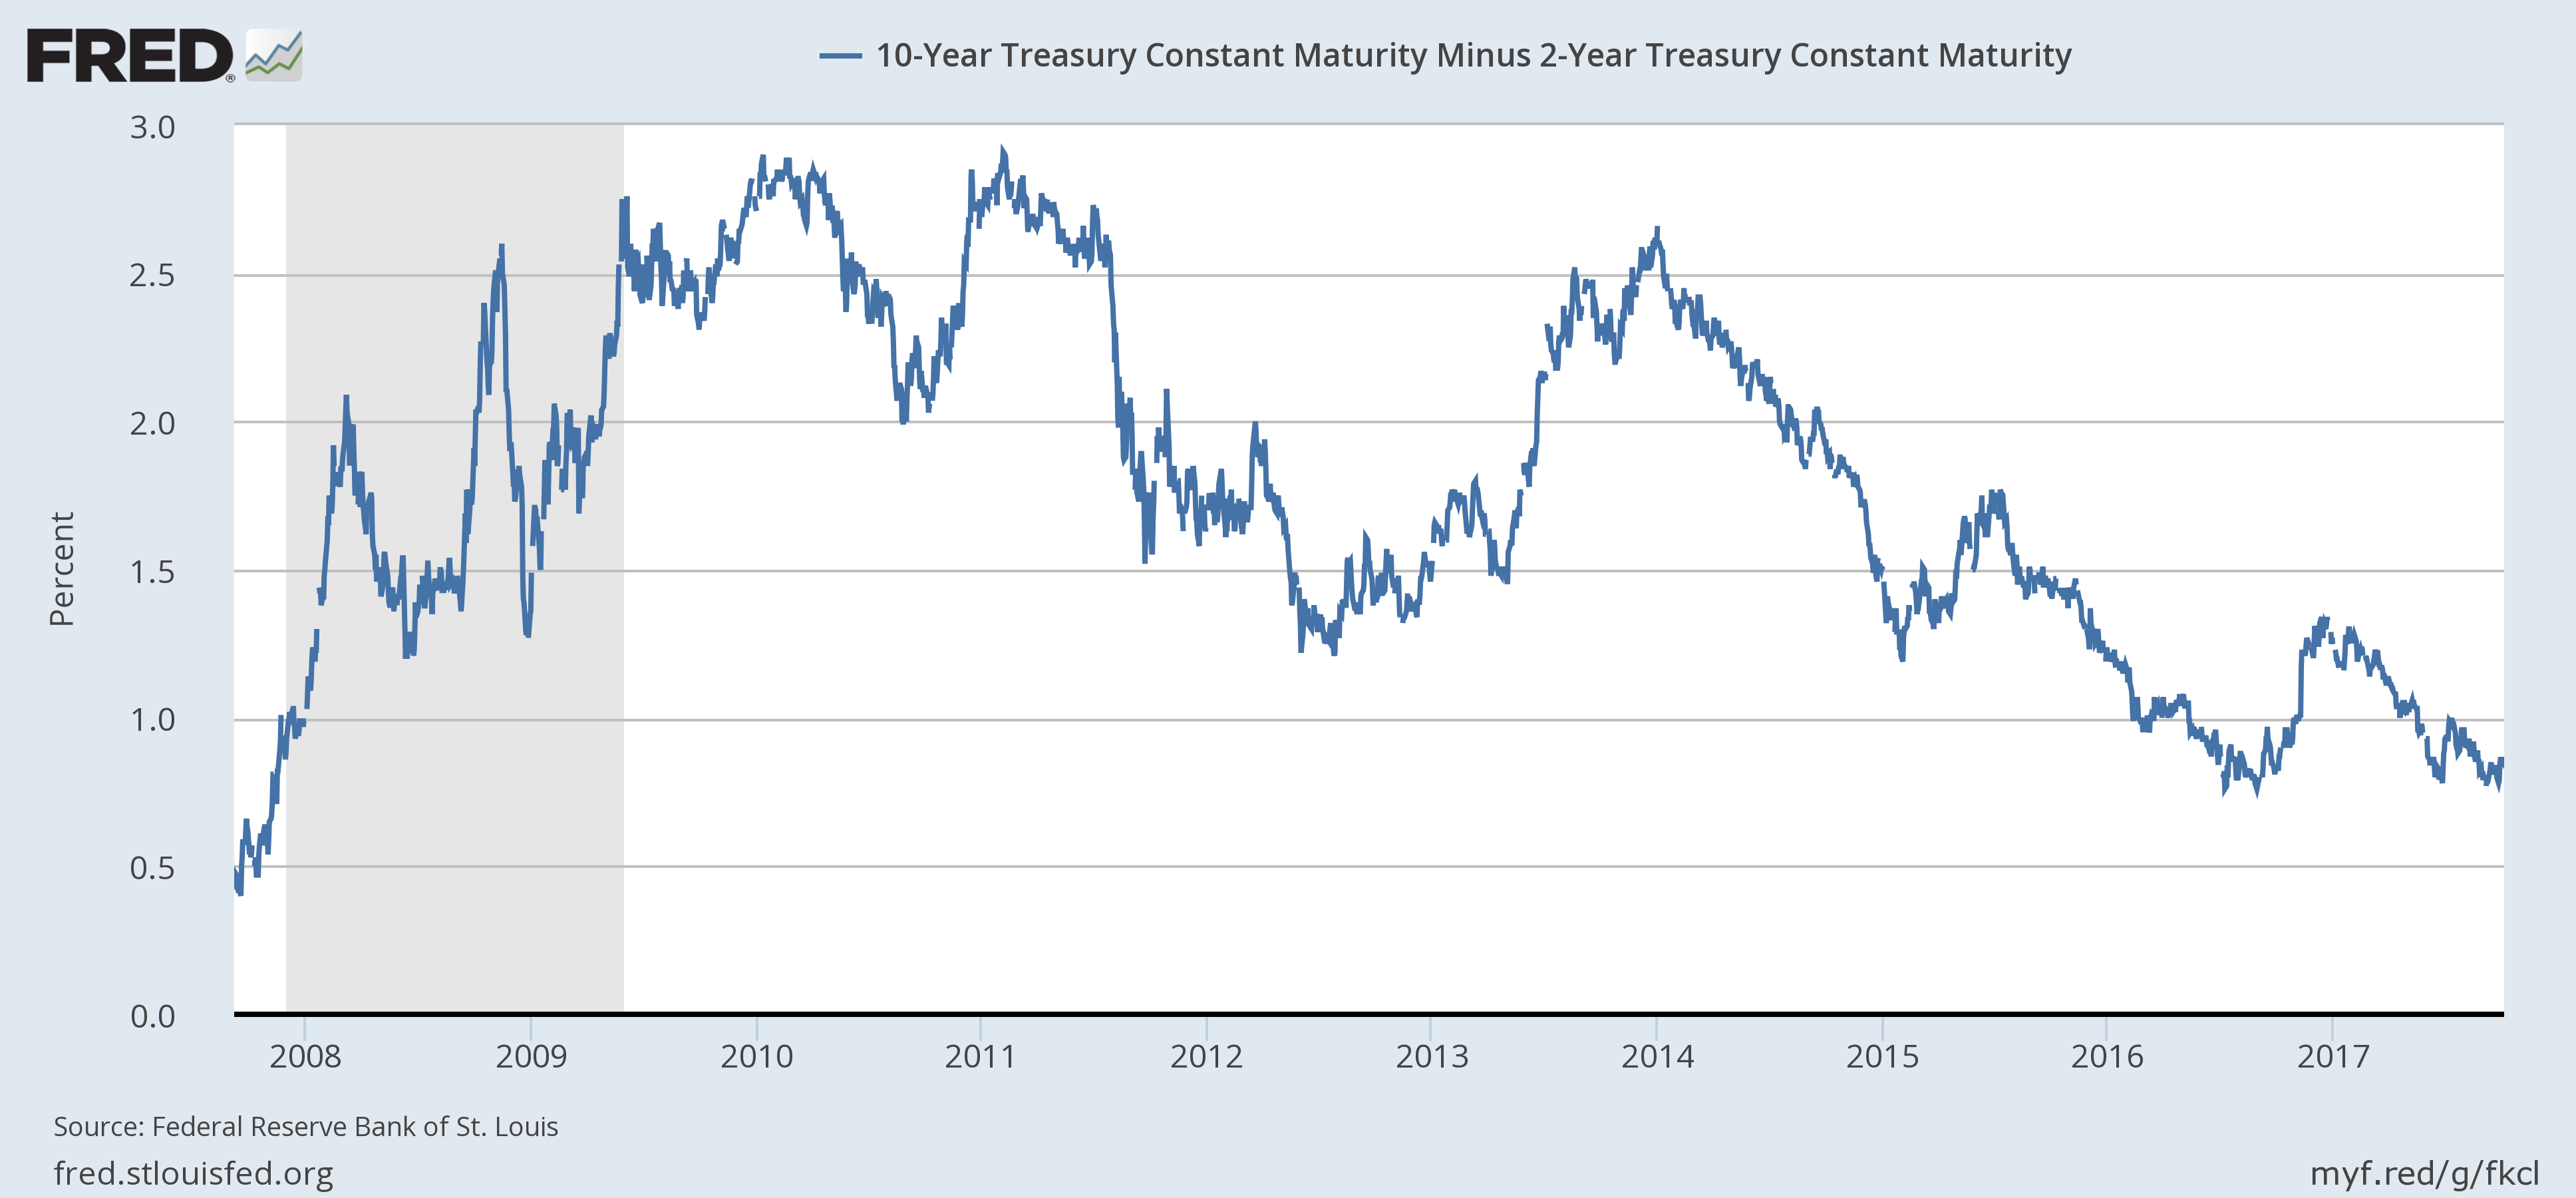 US 10 Year Treasury Constant Maturity, 2008 - 2017